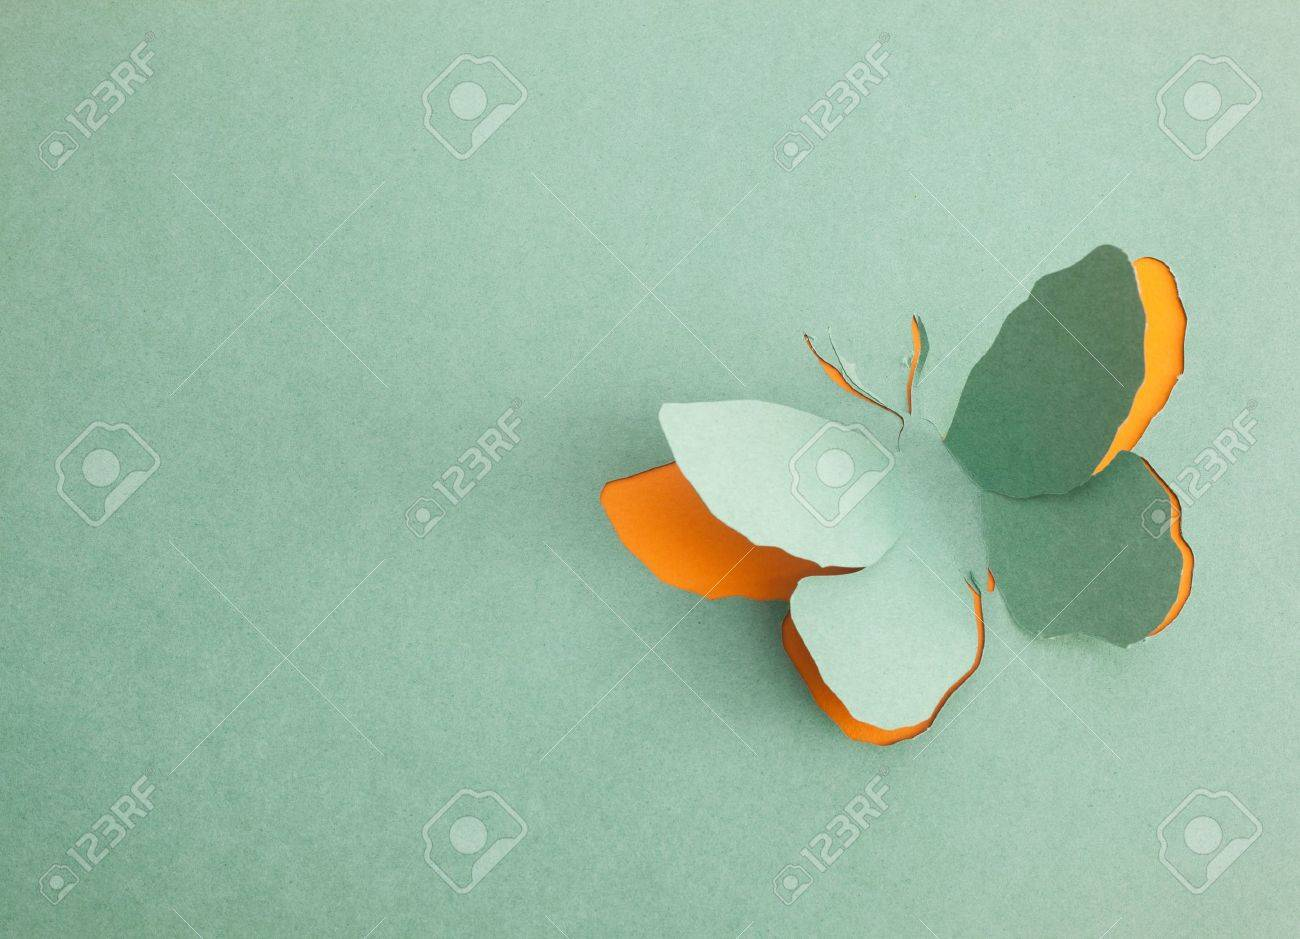 Butterfly origami Stock Photo - 15365606